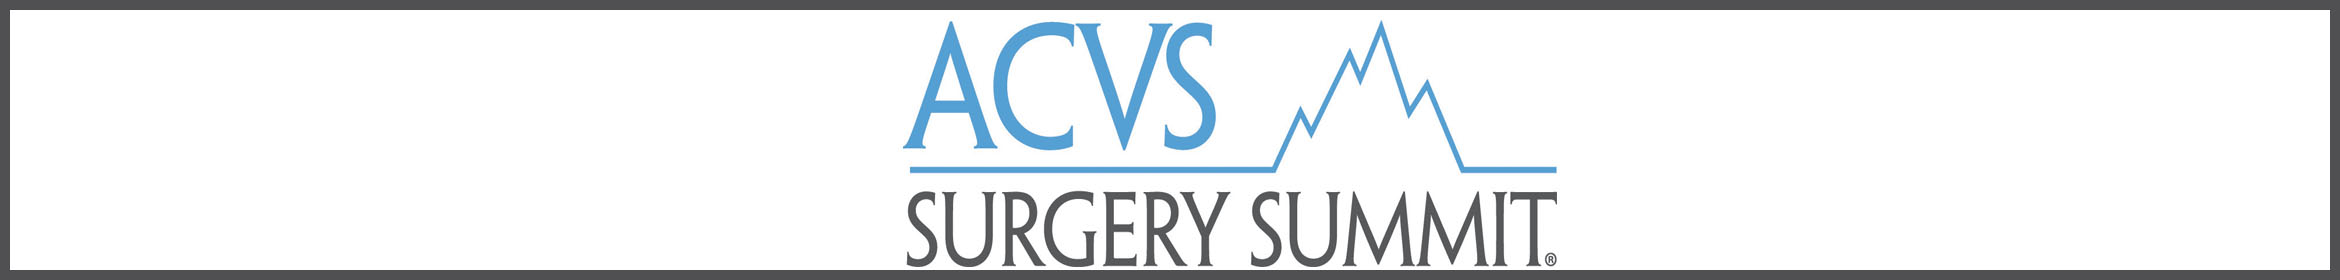 2017 ACVS Surgery Summit Main banner